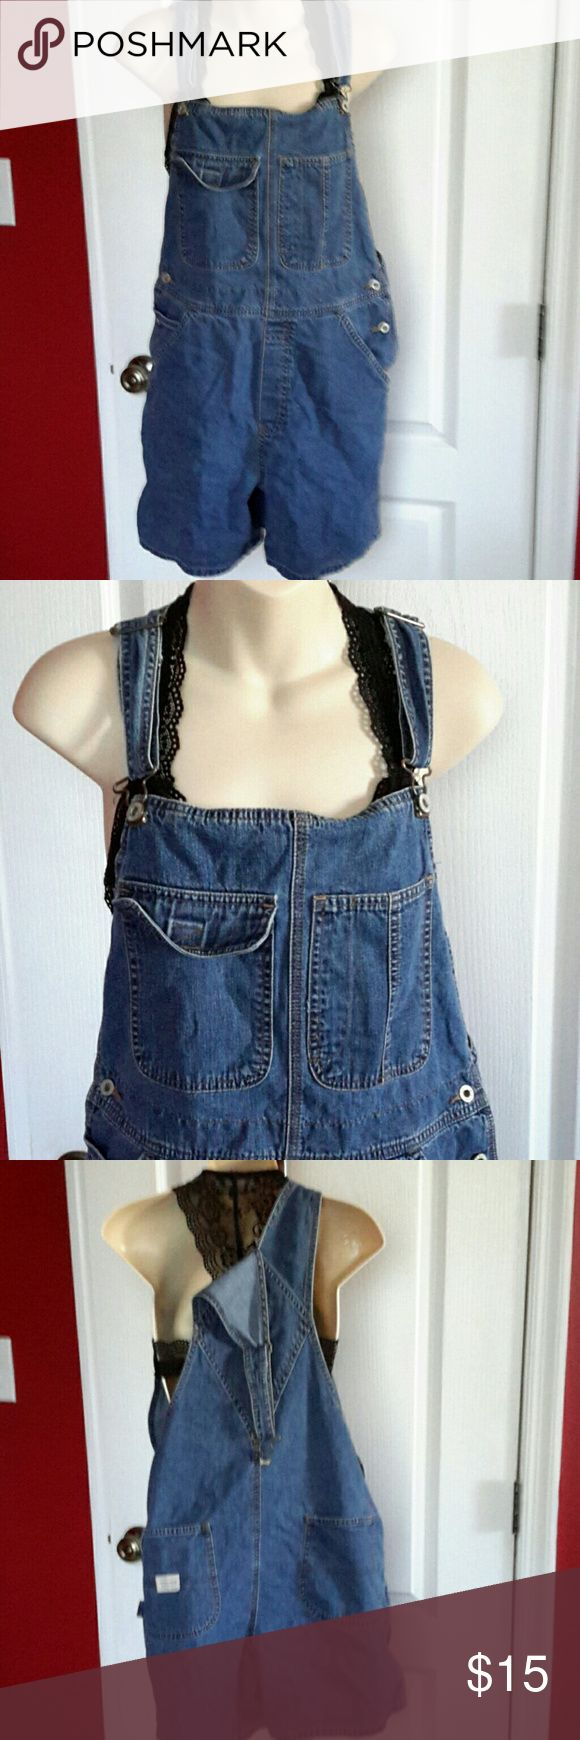 Old Navy Denim Short Overalls Large So cute with just a bralette.  Extra roomy  adjustable straps  fits 10 thru 14 because size large  excellent condition. Old Navy Shorts